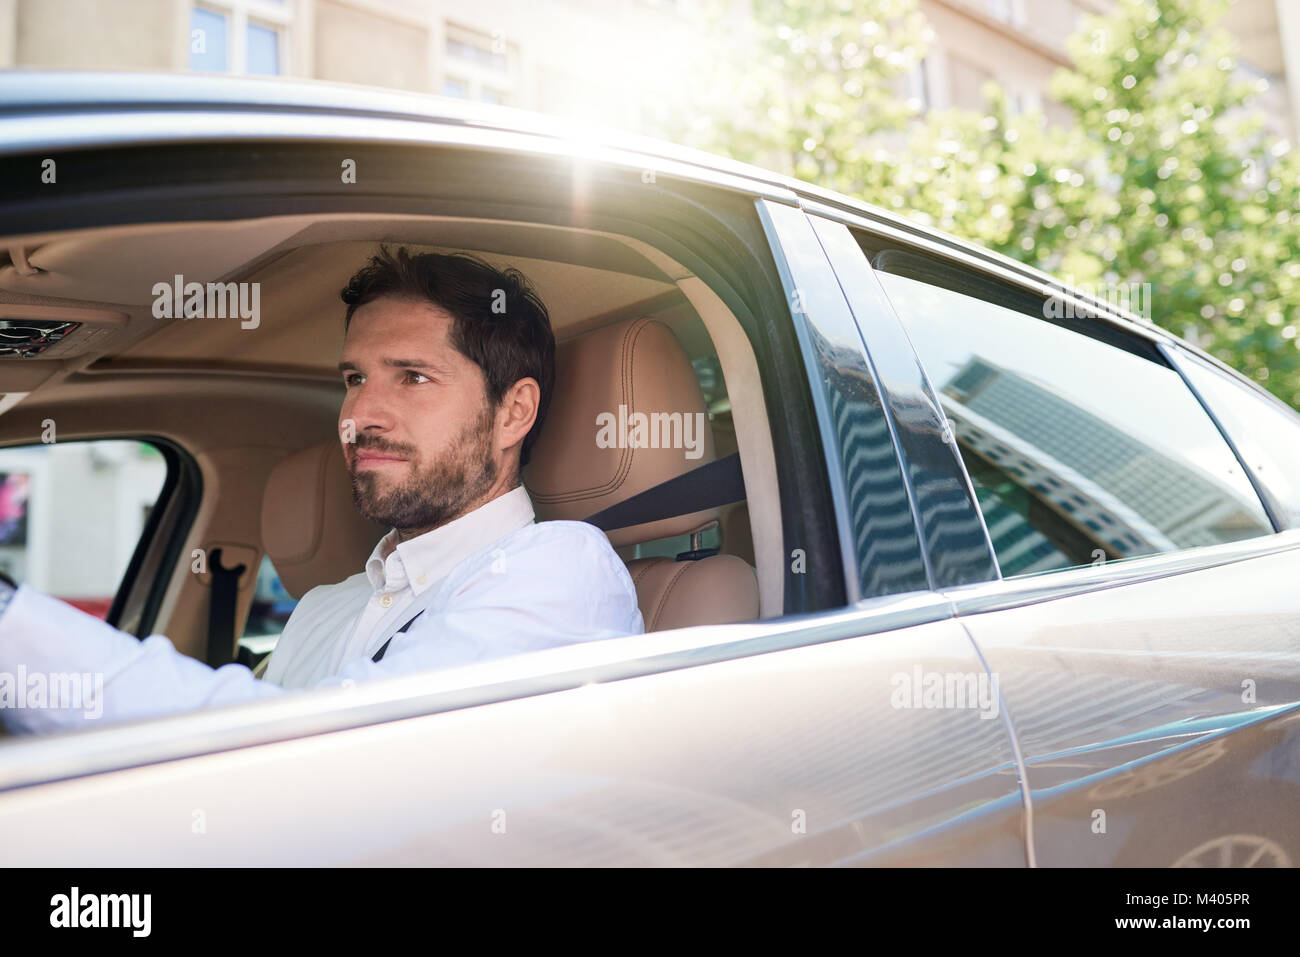 Young man driving his car through city streets - Stock Image